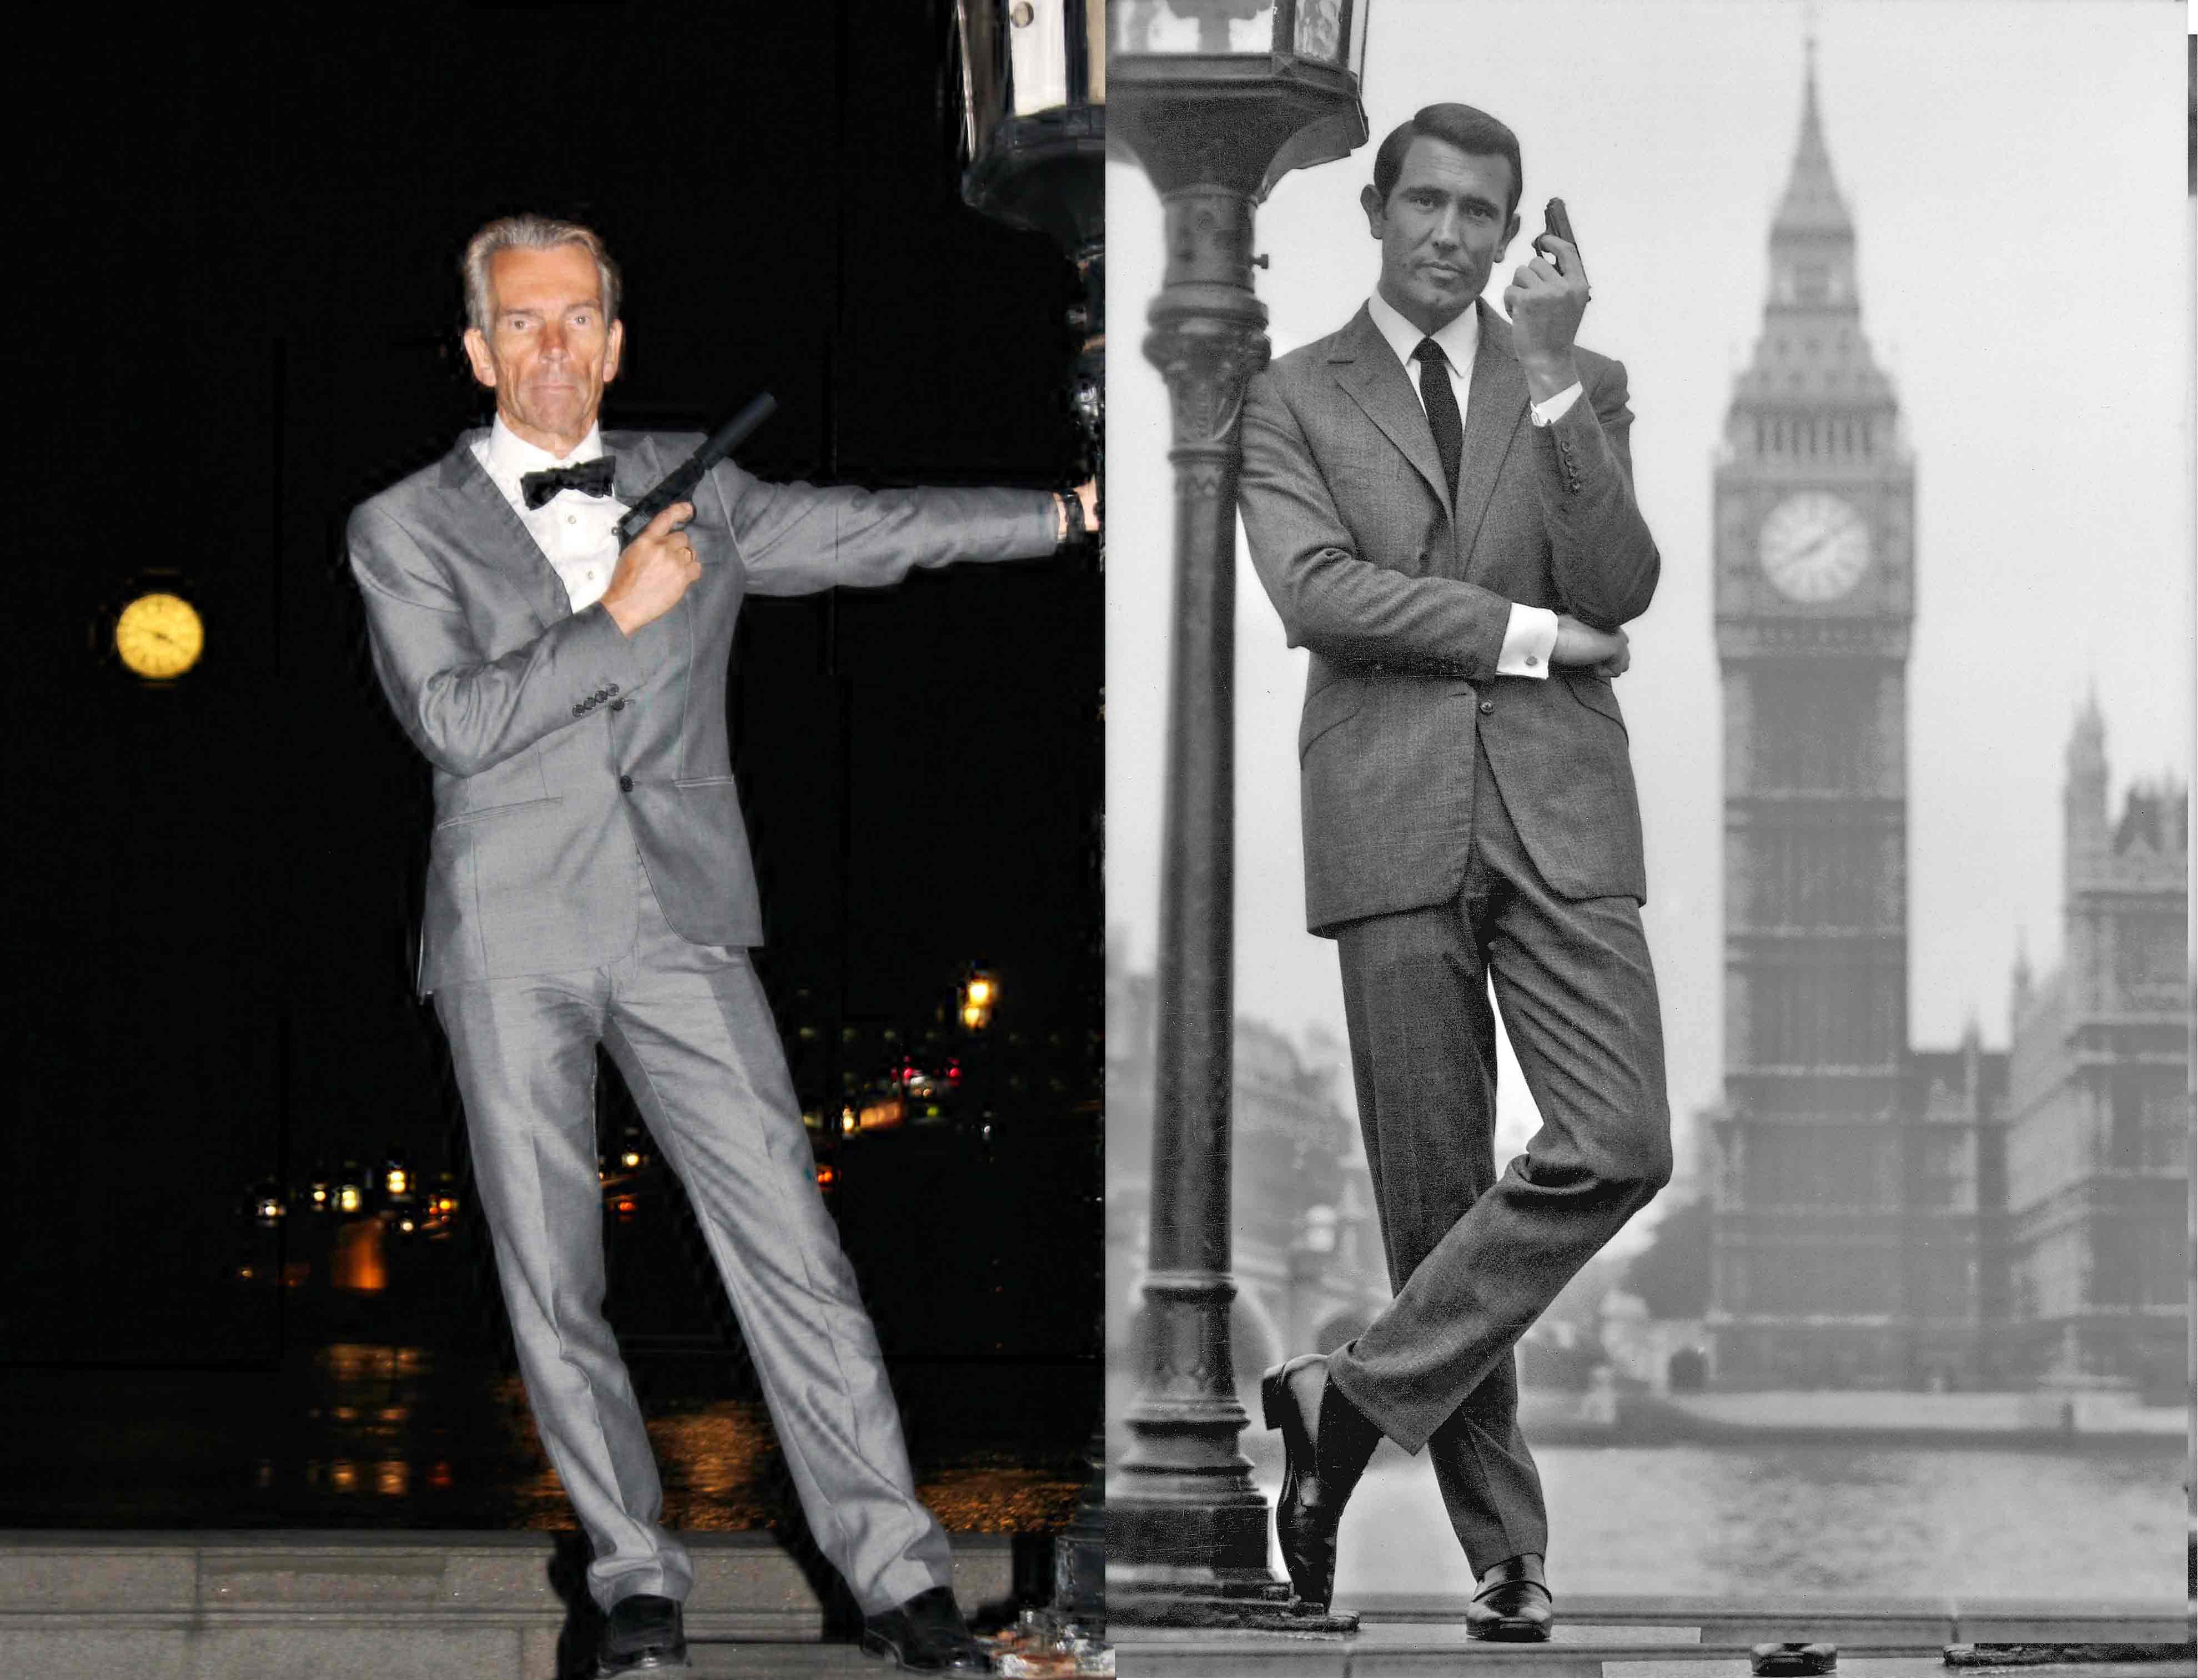 Gunnar Schäfer James Bond and George Lazenby as James Bond Big Ben London